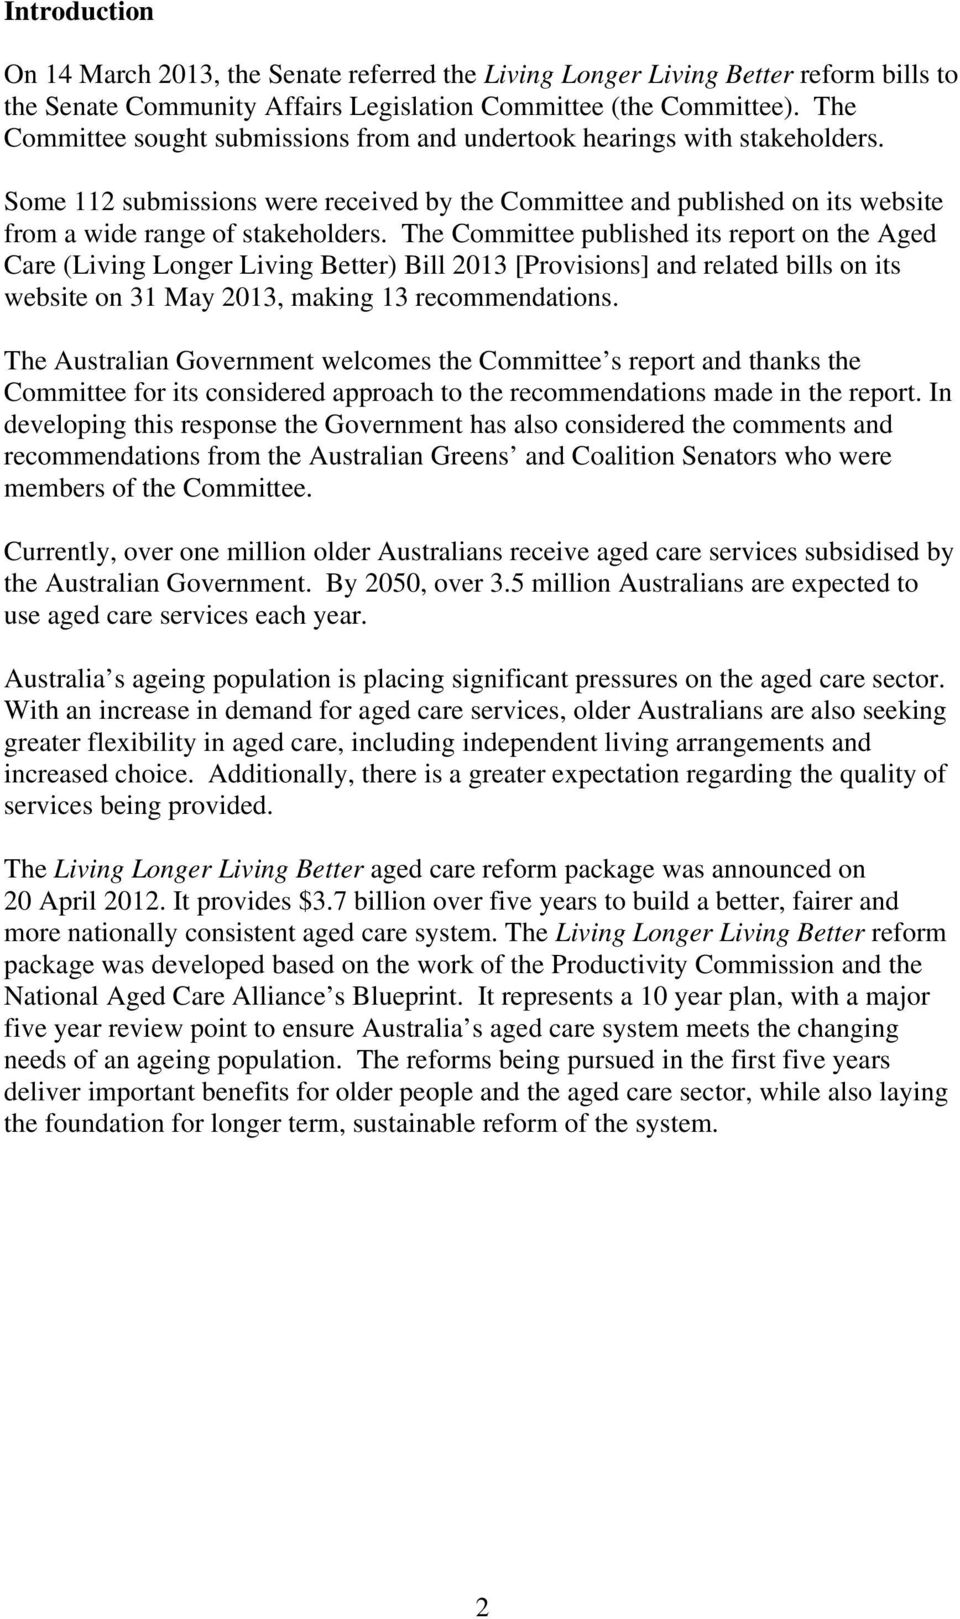 The Committee published its report on the Aged Care (Living Longer Living Better) Bill 2013 [Provisions] and related bills on its website on 31 May 2013, making 13 recommendations.